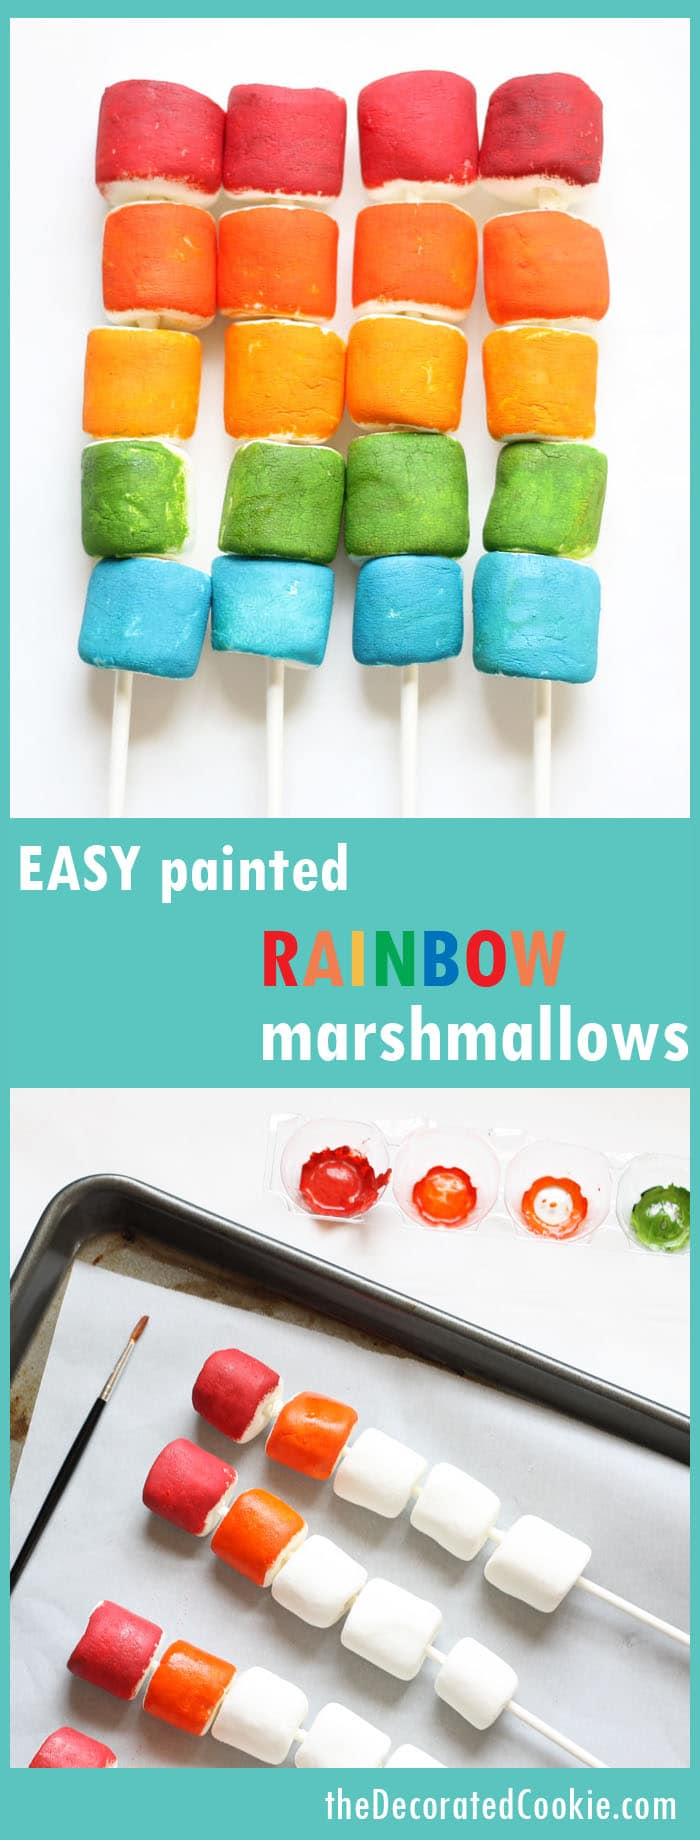 EASY painted rainbow marshmallows on a stick